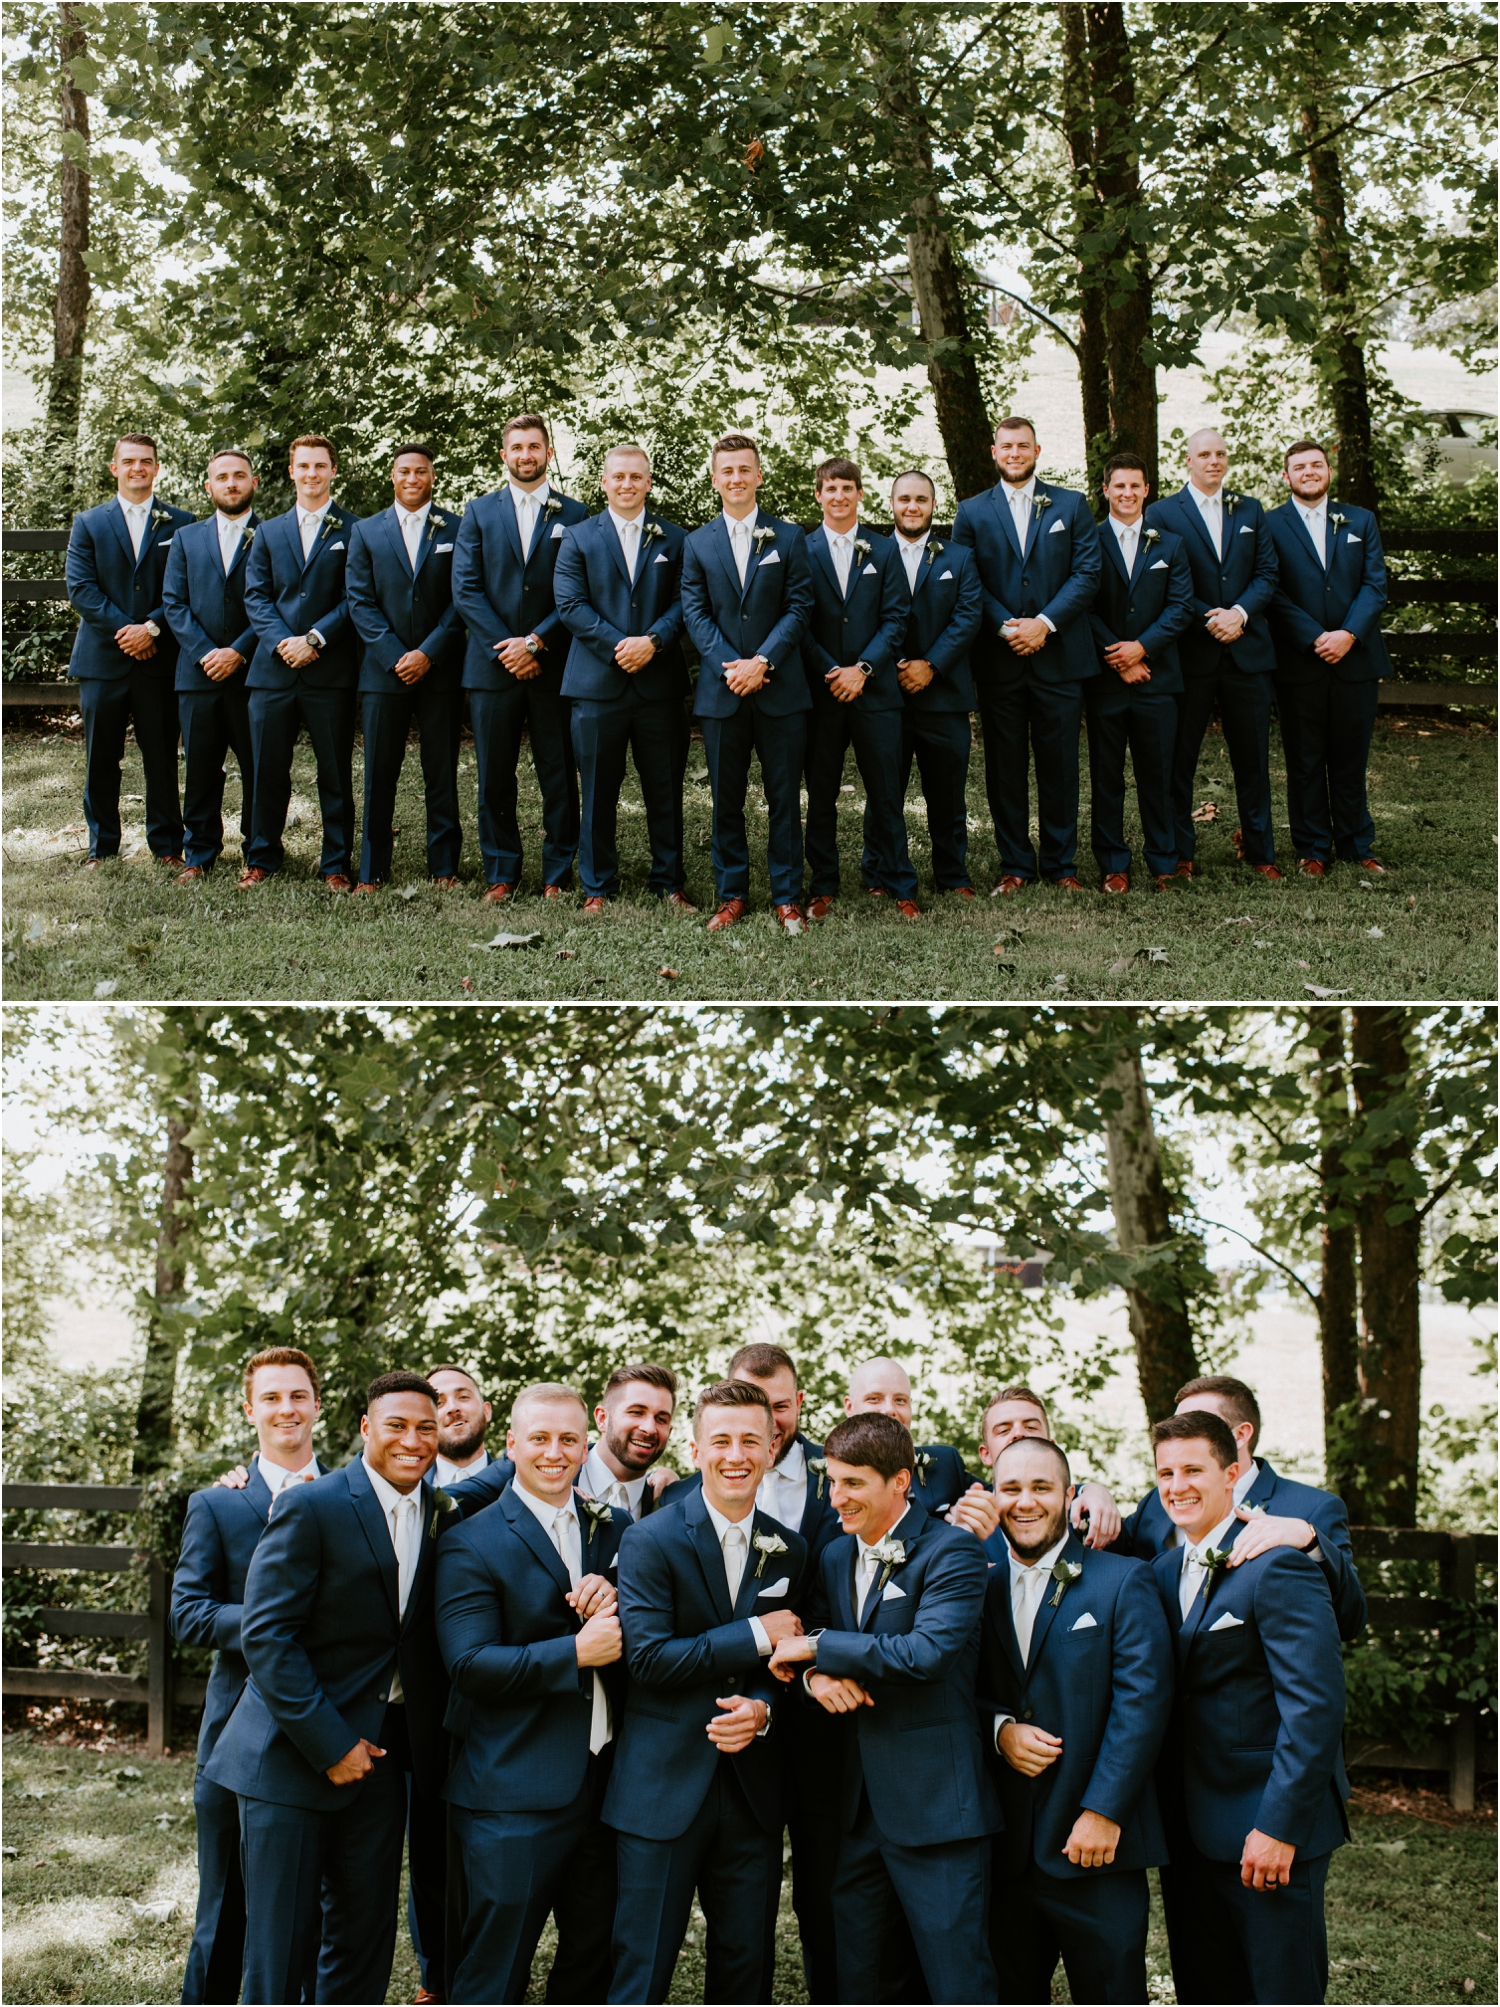 groom and groomsmen with navy suits